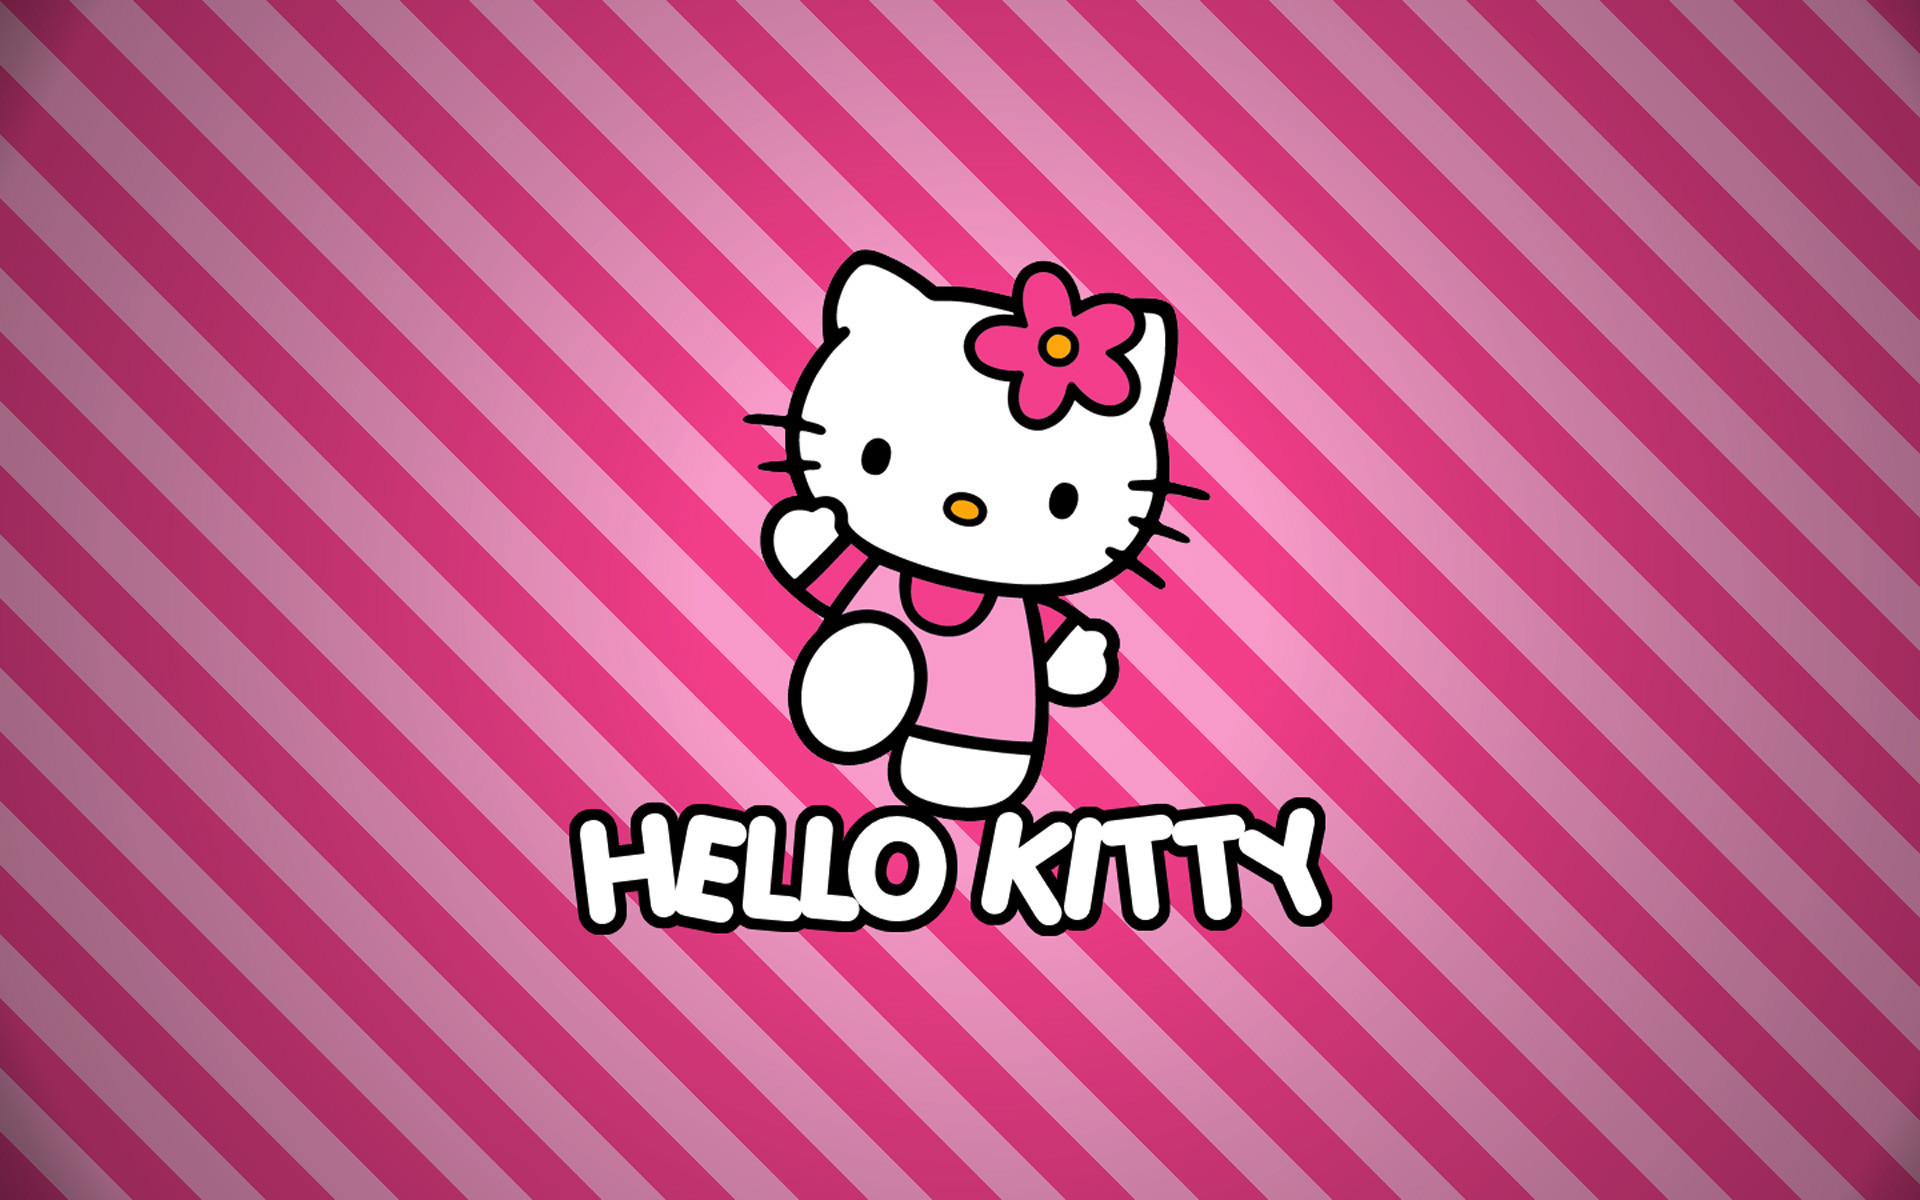 Wonderful Wallpaper Hello Kitty Angel - 854698-amazing-hello-kitty-backgrounds-for-computers-1920x1200-large-resolution  Picture_756736.jpg